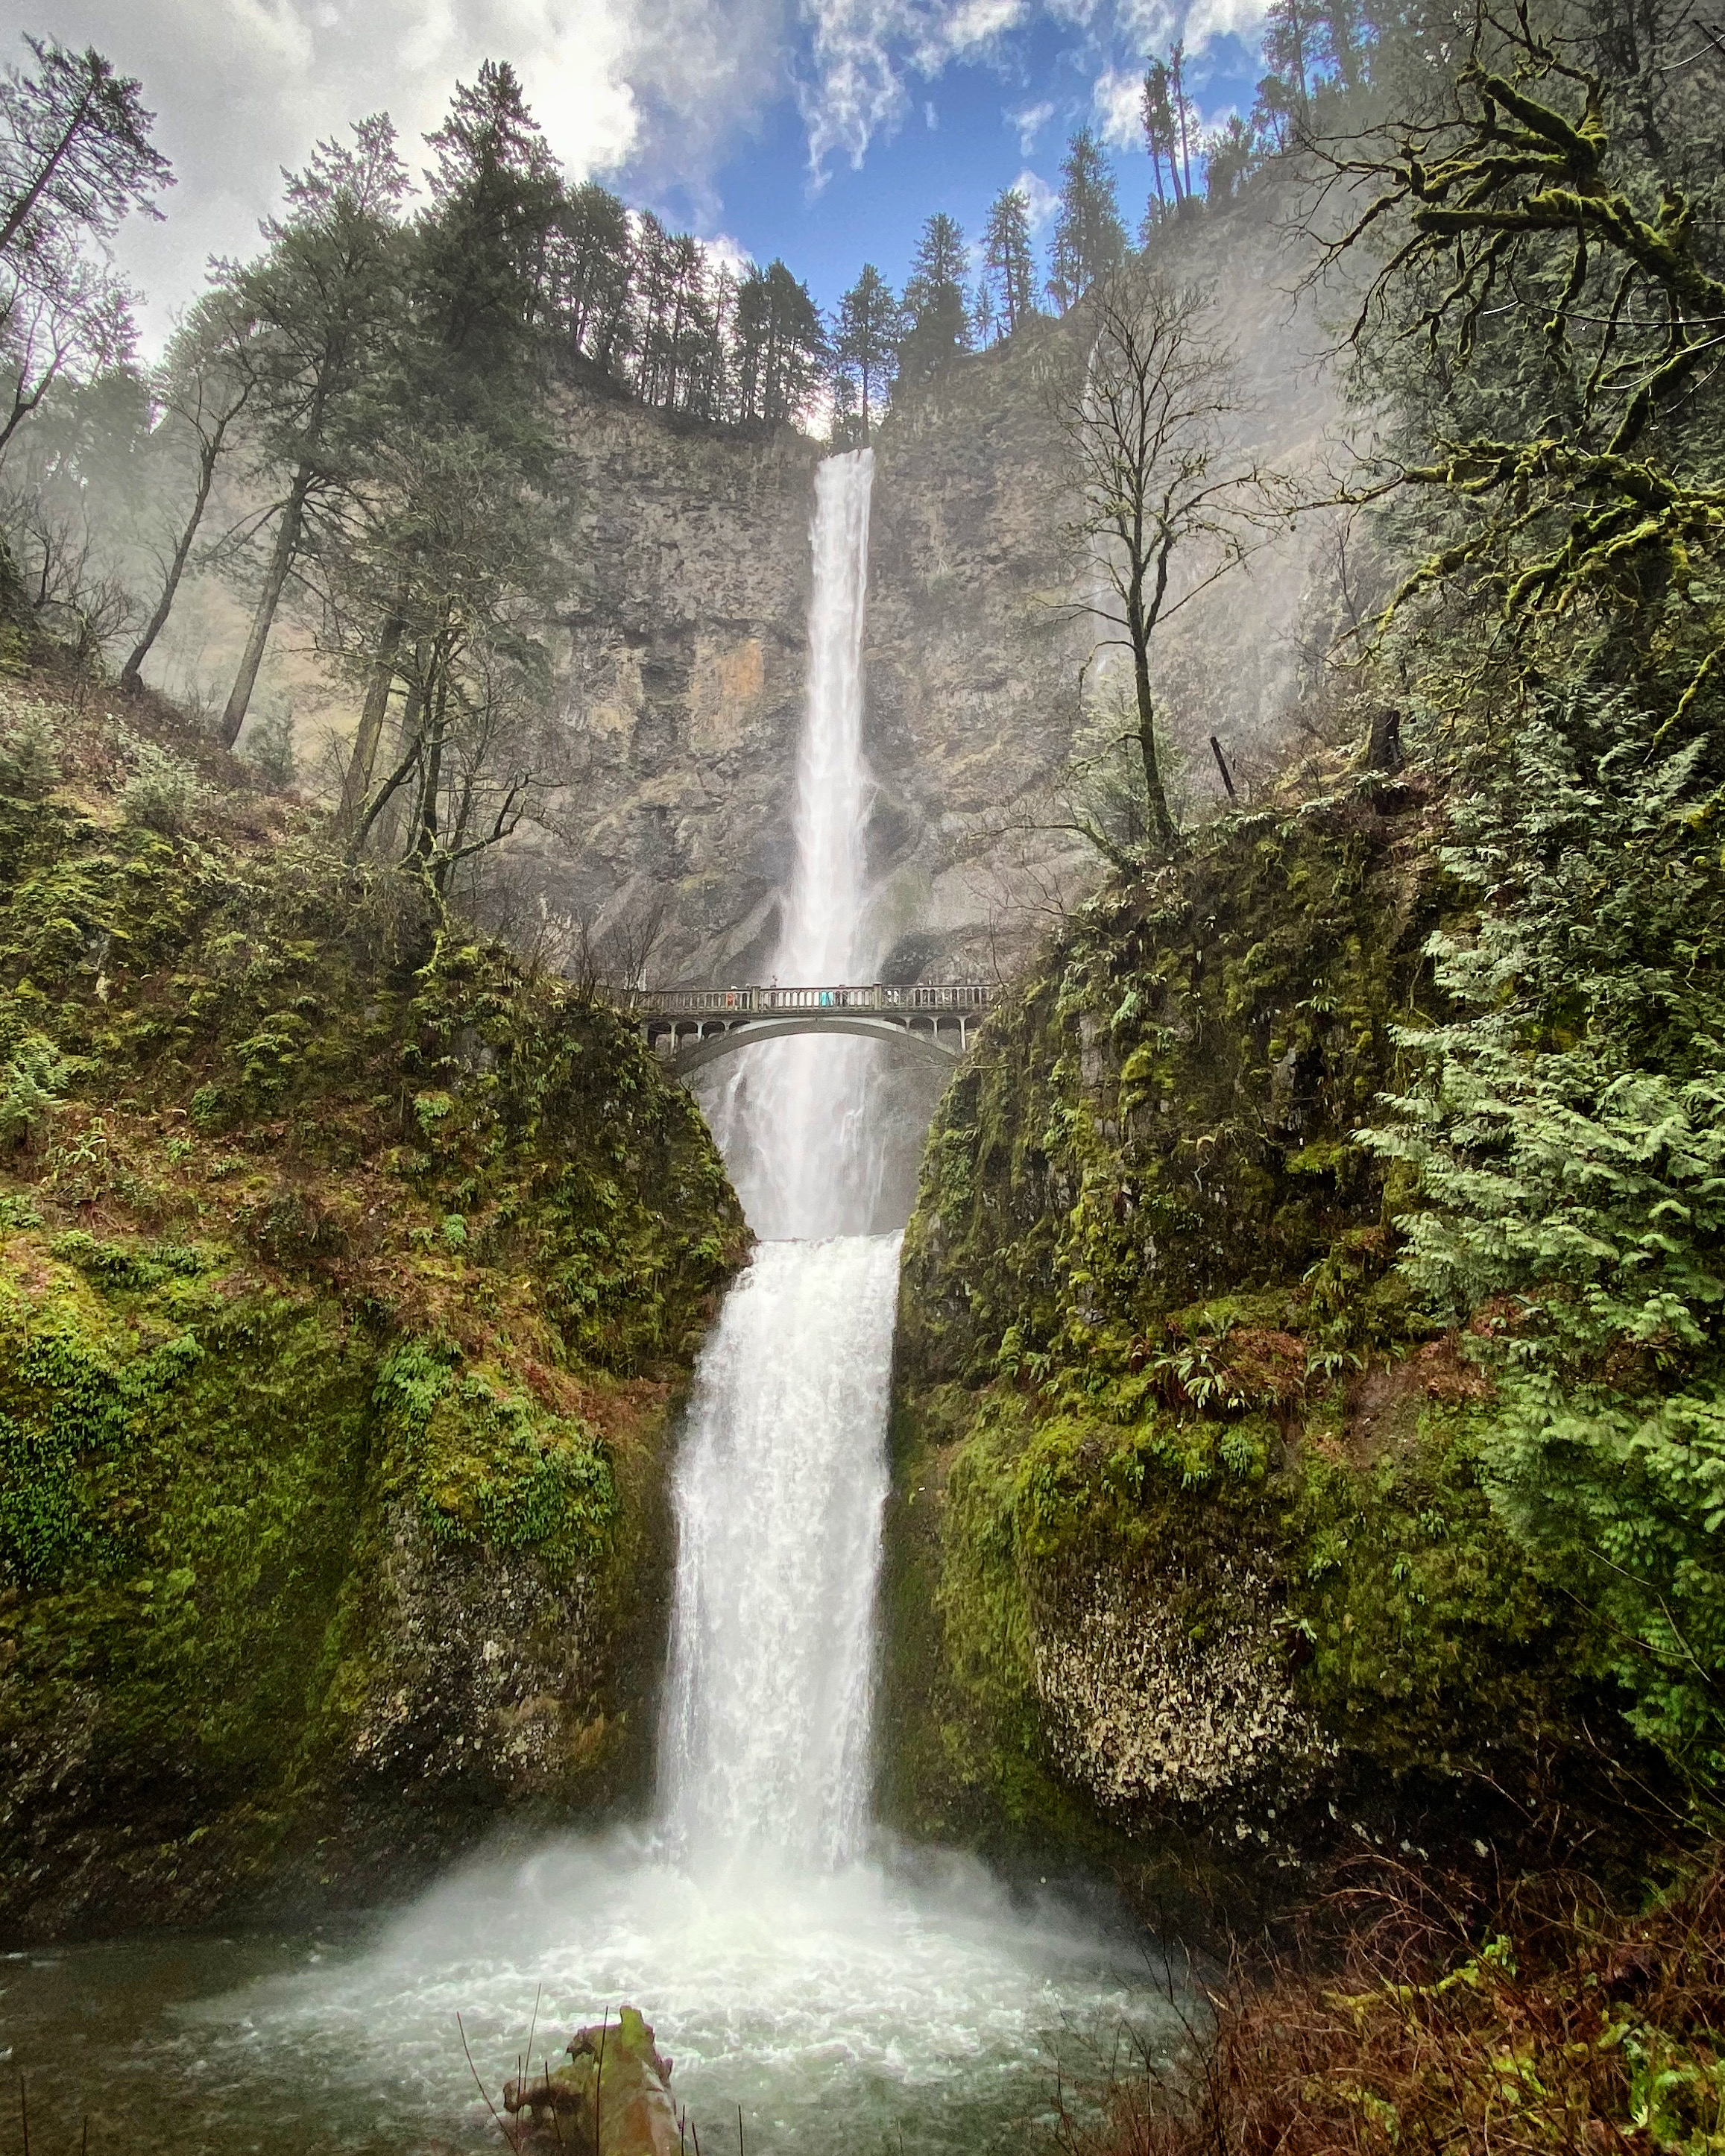 The 620 foot high Multnomah Falls on a cool February morning with low level clouds passing through. The falls are the most-visited natural recreation site in the Pacific Northwest.